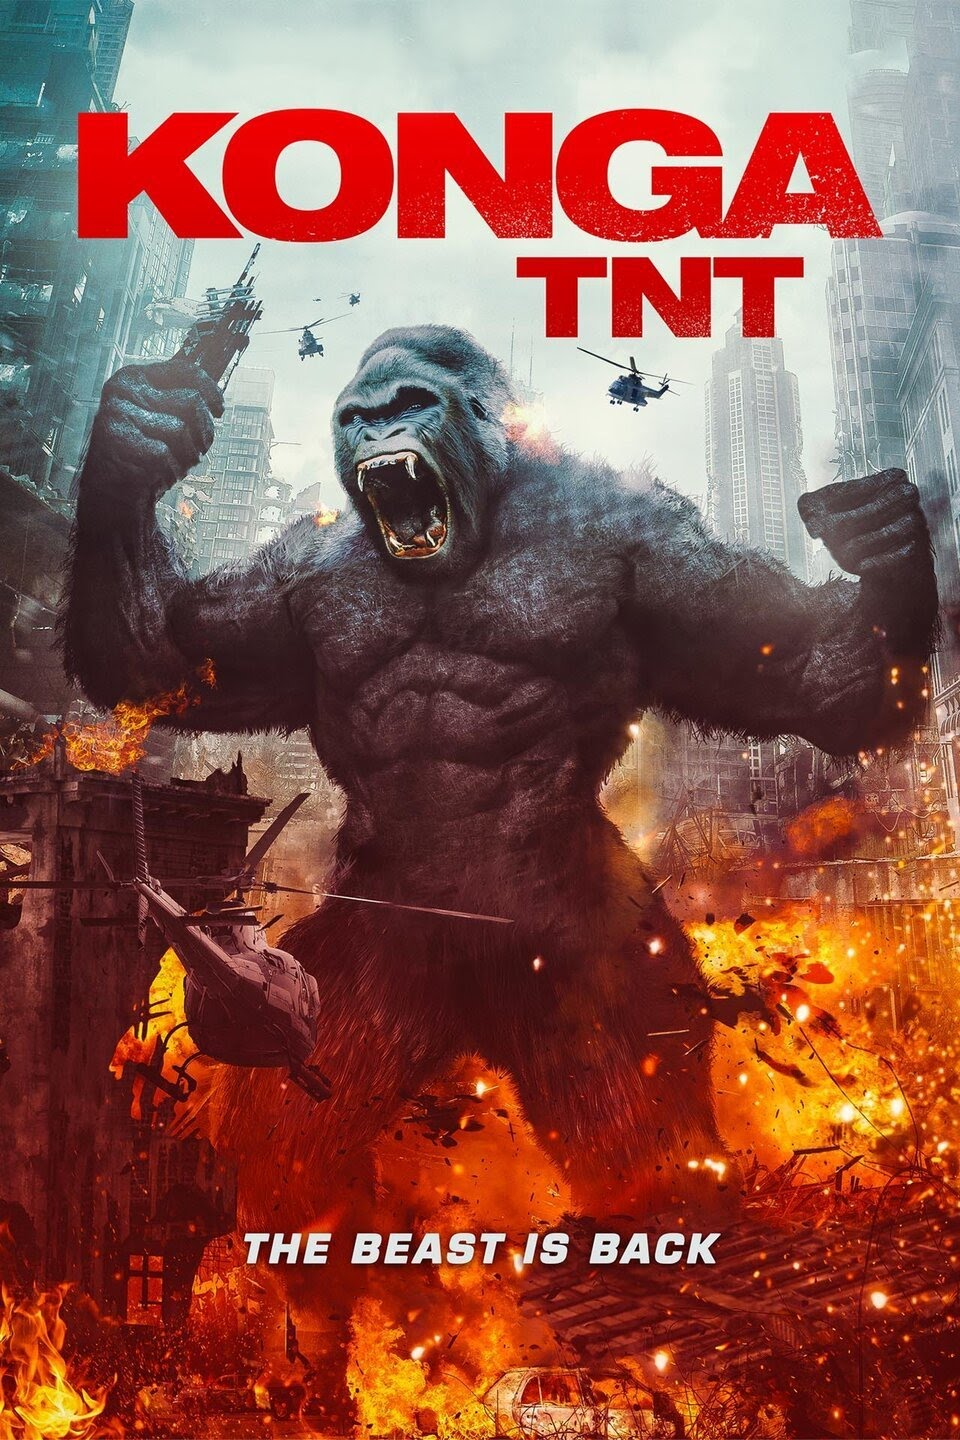 Giant Gorilla Rampage In KONGA TNT – Now Out On DVD!!